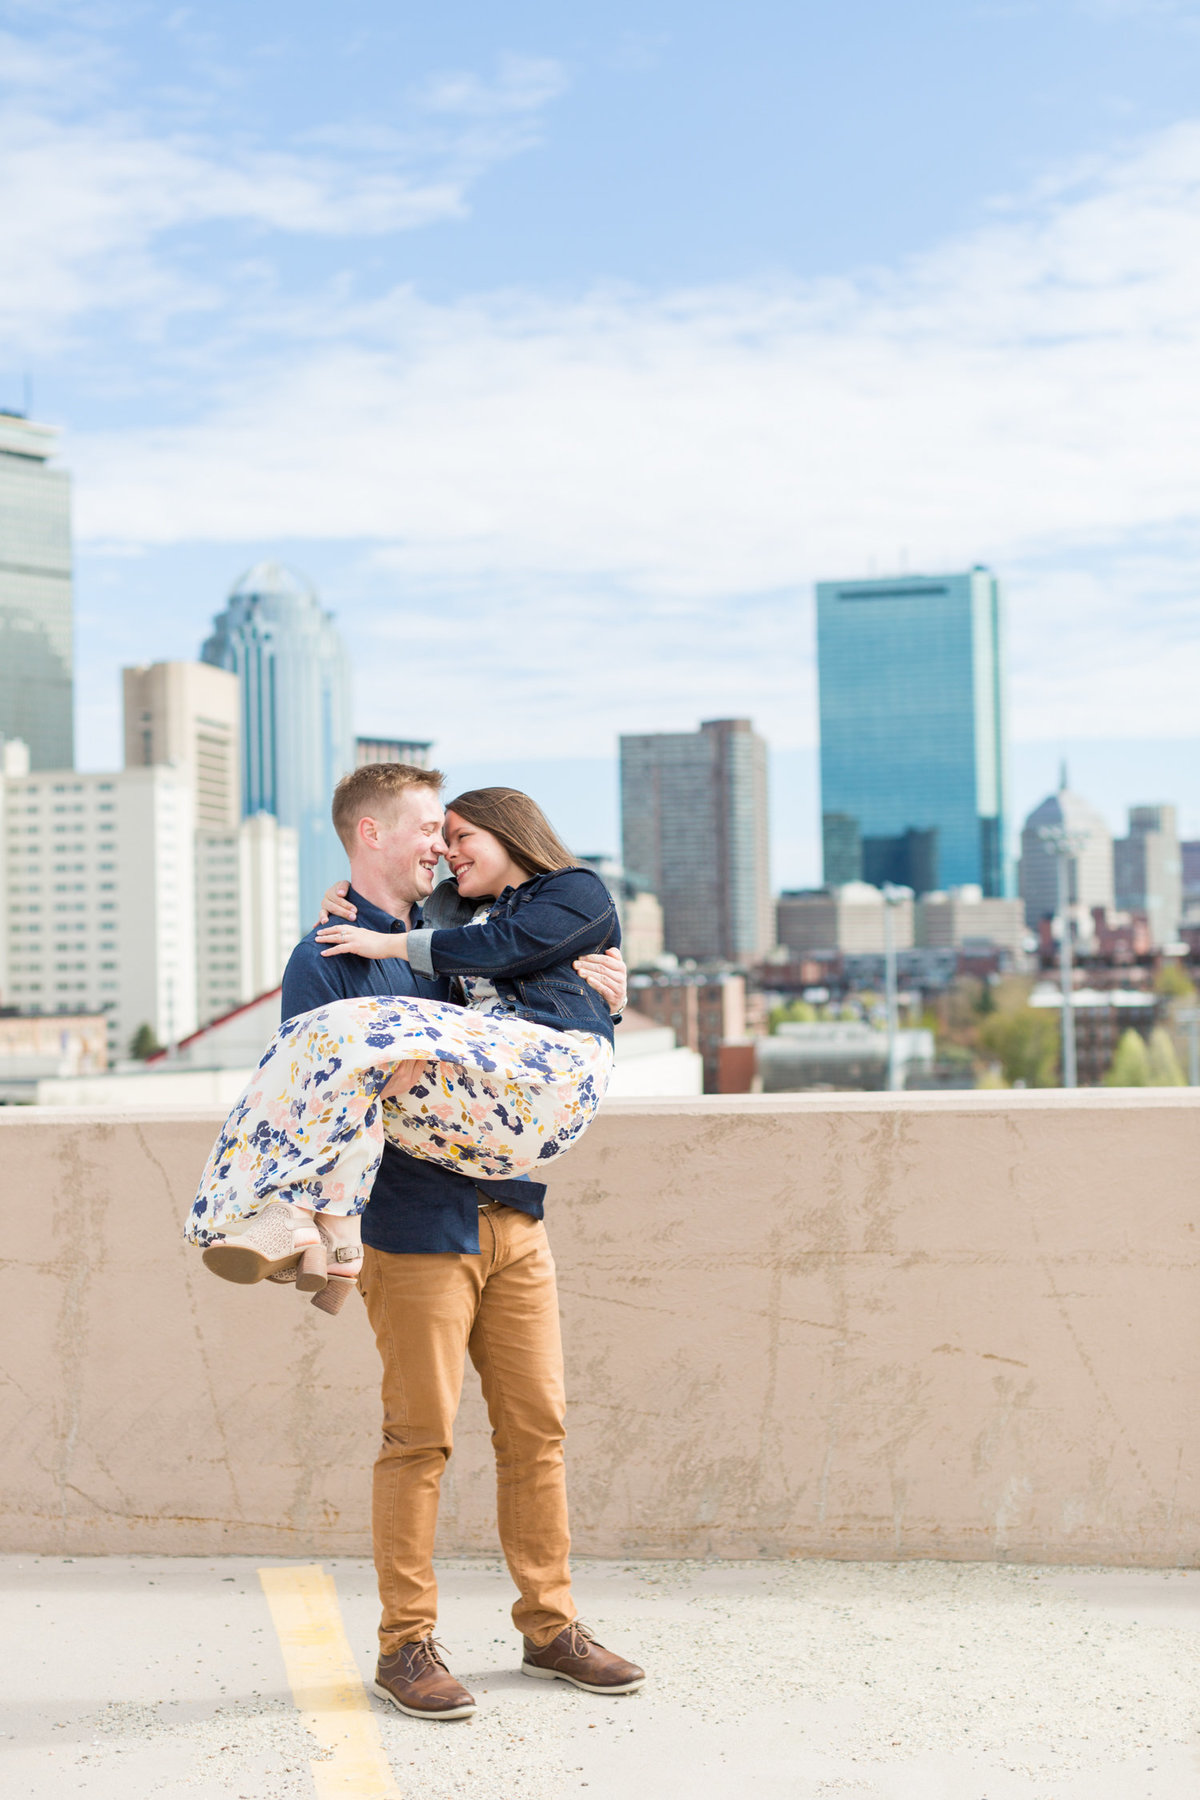 Laura-Klacik-Photography-Engagement-Photos-4